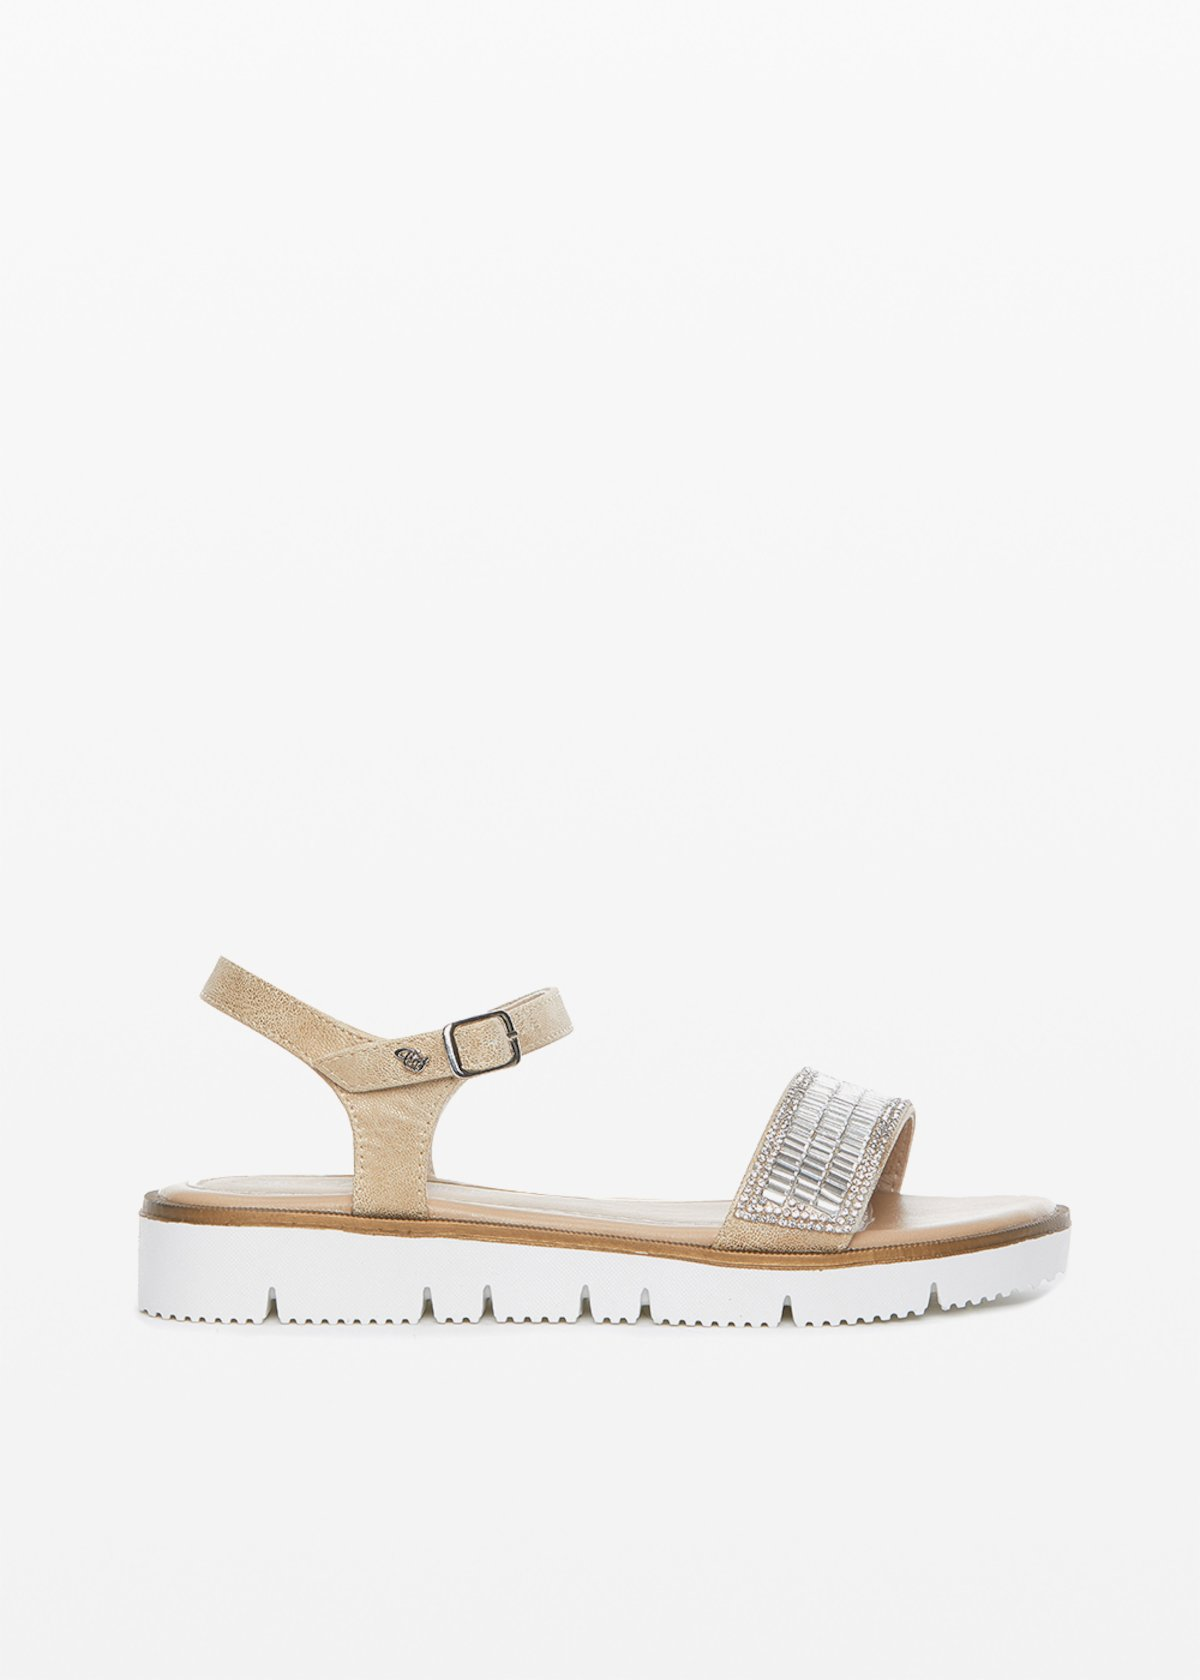 Shilin crystal detail low sandals - Light Beige - Woman - Category image